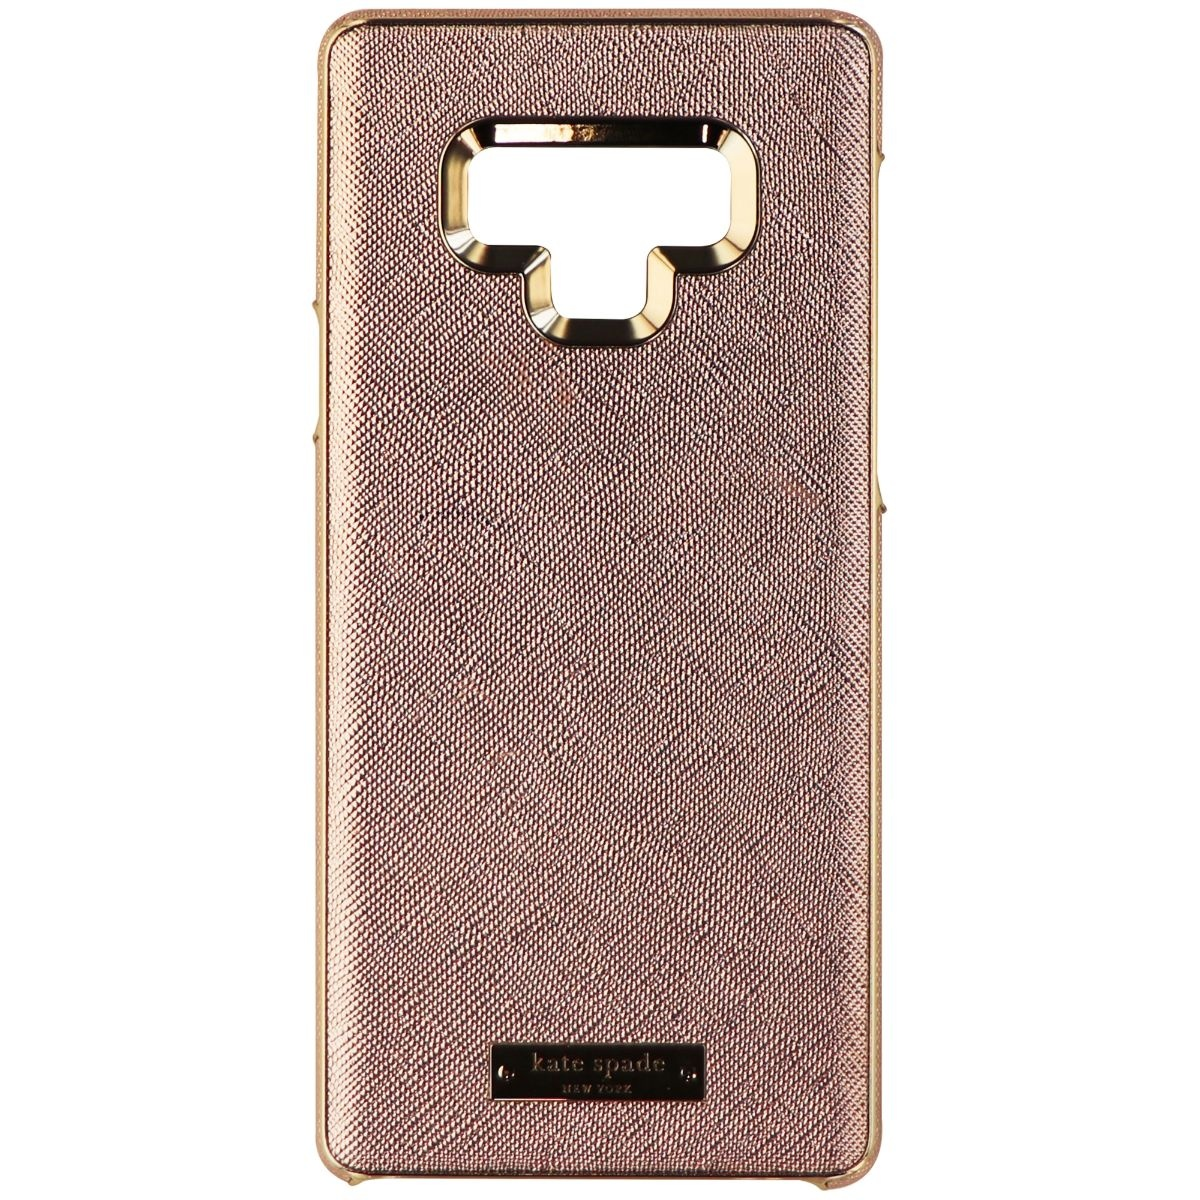 outlet store 9b1b7 d2674 Kate Spade Wrap Case for Samsung Galaxy Note 9 - Saffiano Rose Gold